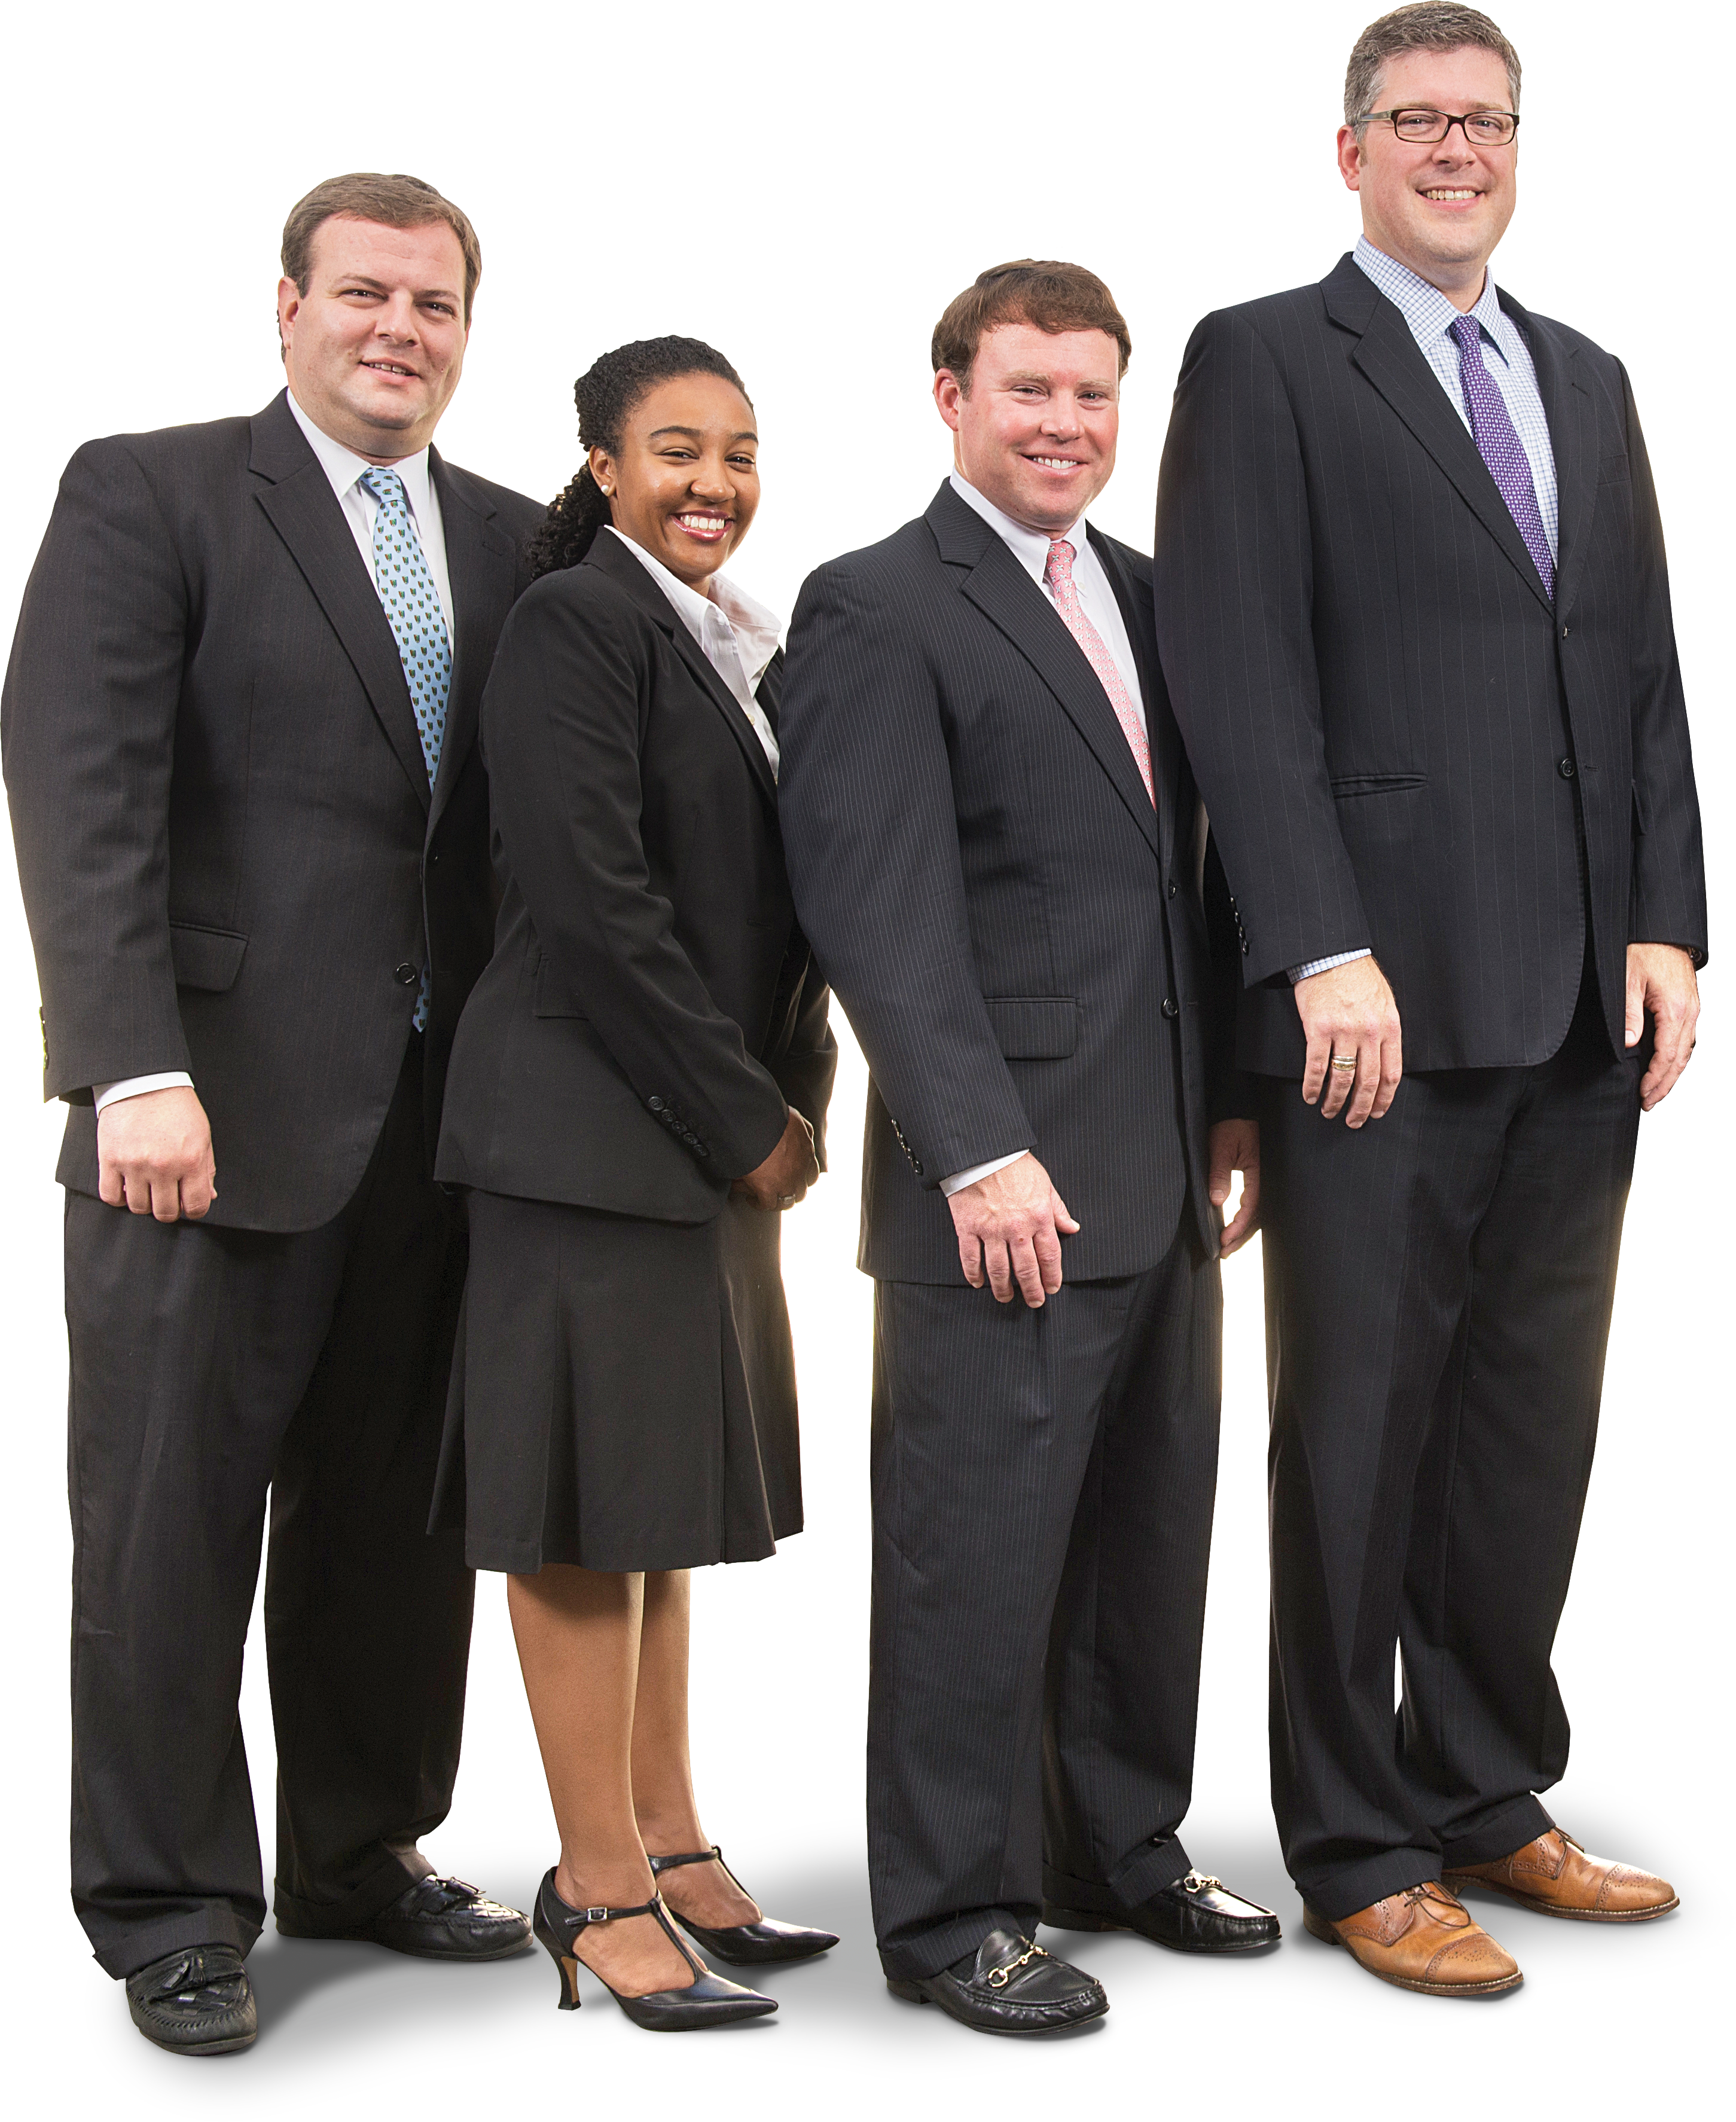 law offices of oliver and cheek, lawers, New Bern Nc, Business law, Consumer law, estate planning,